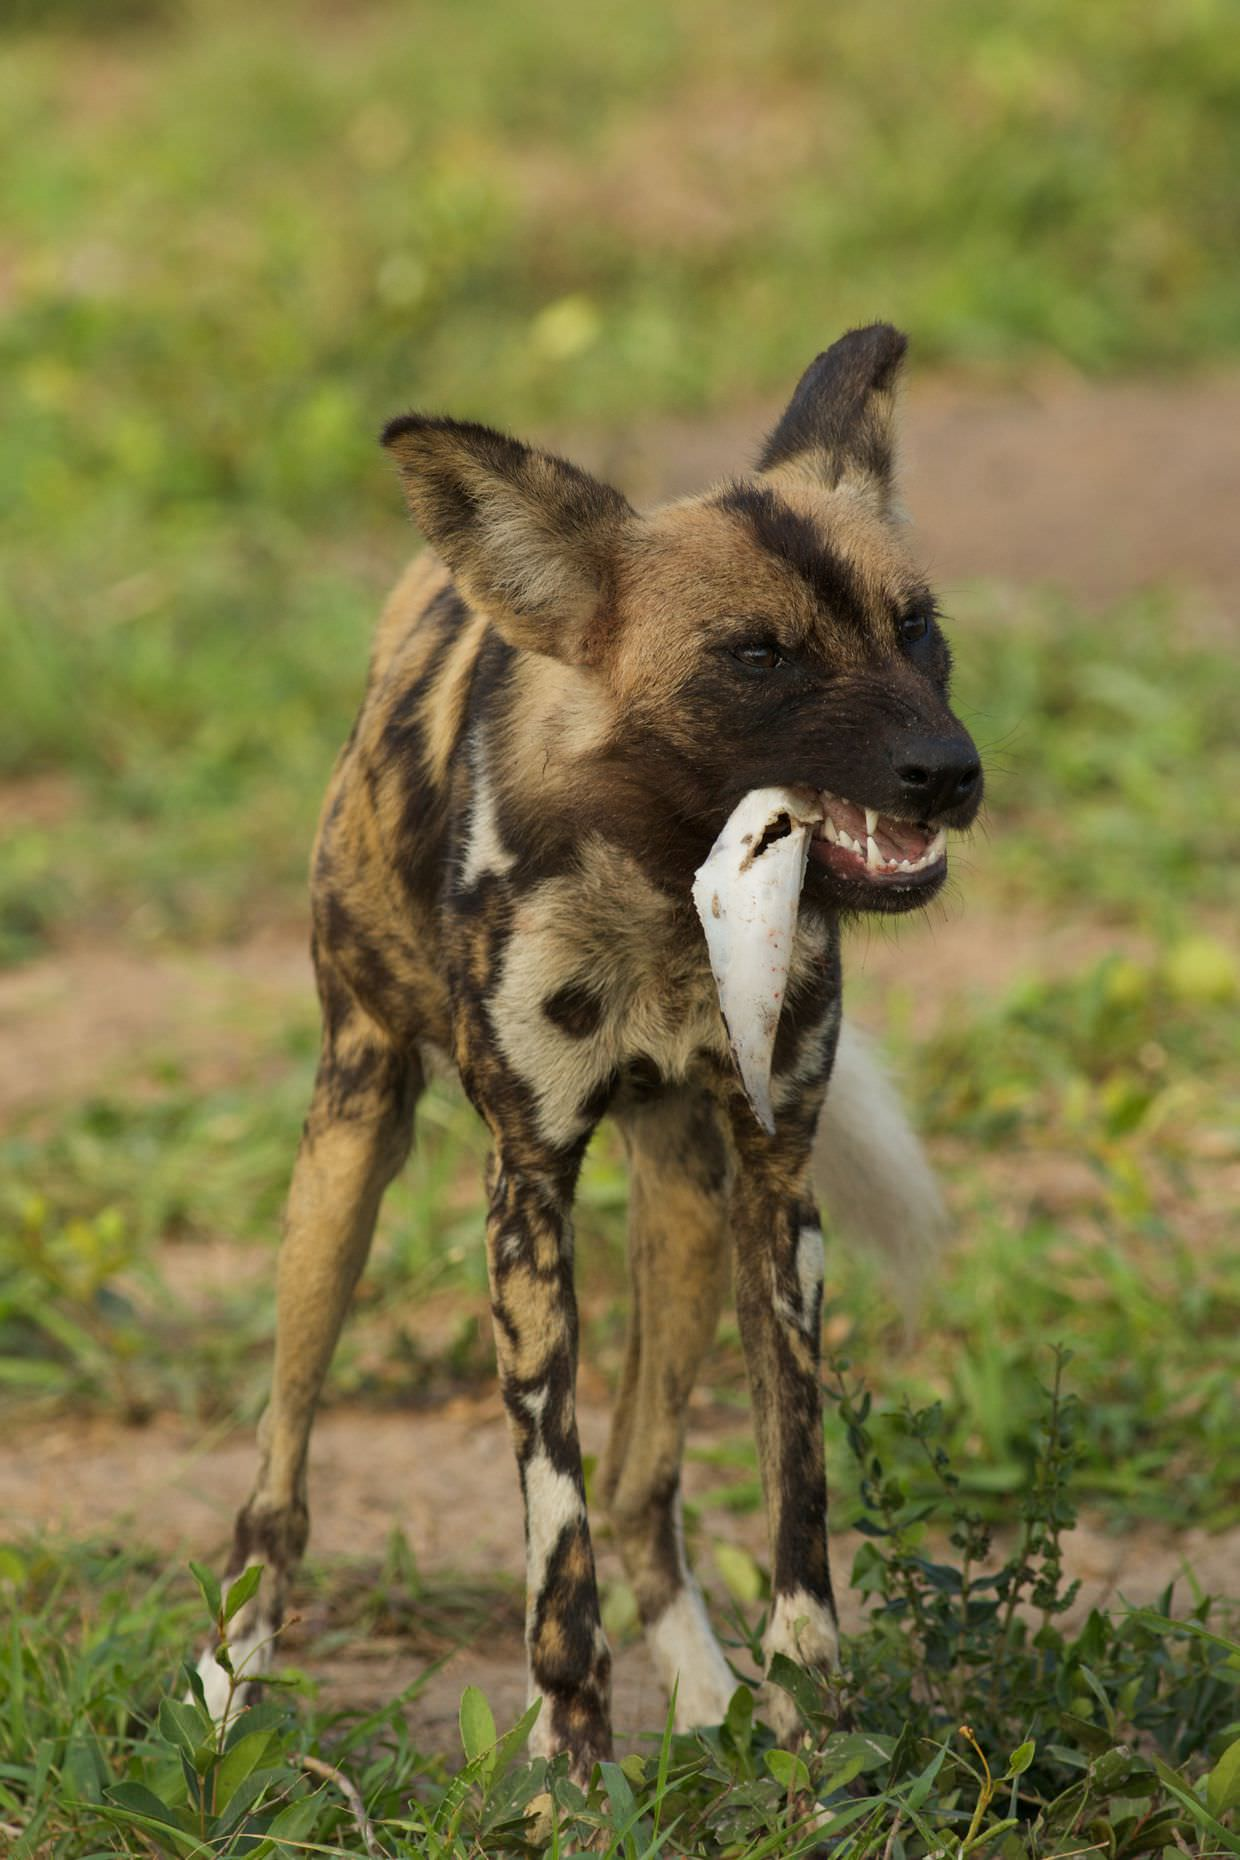 Wild dog chewing on an ear